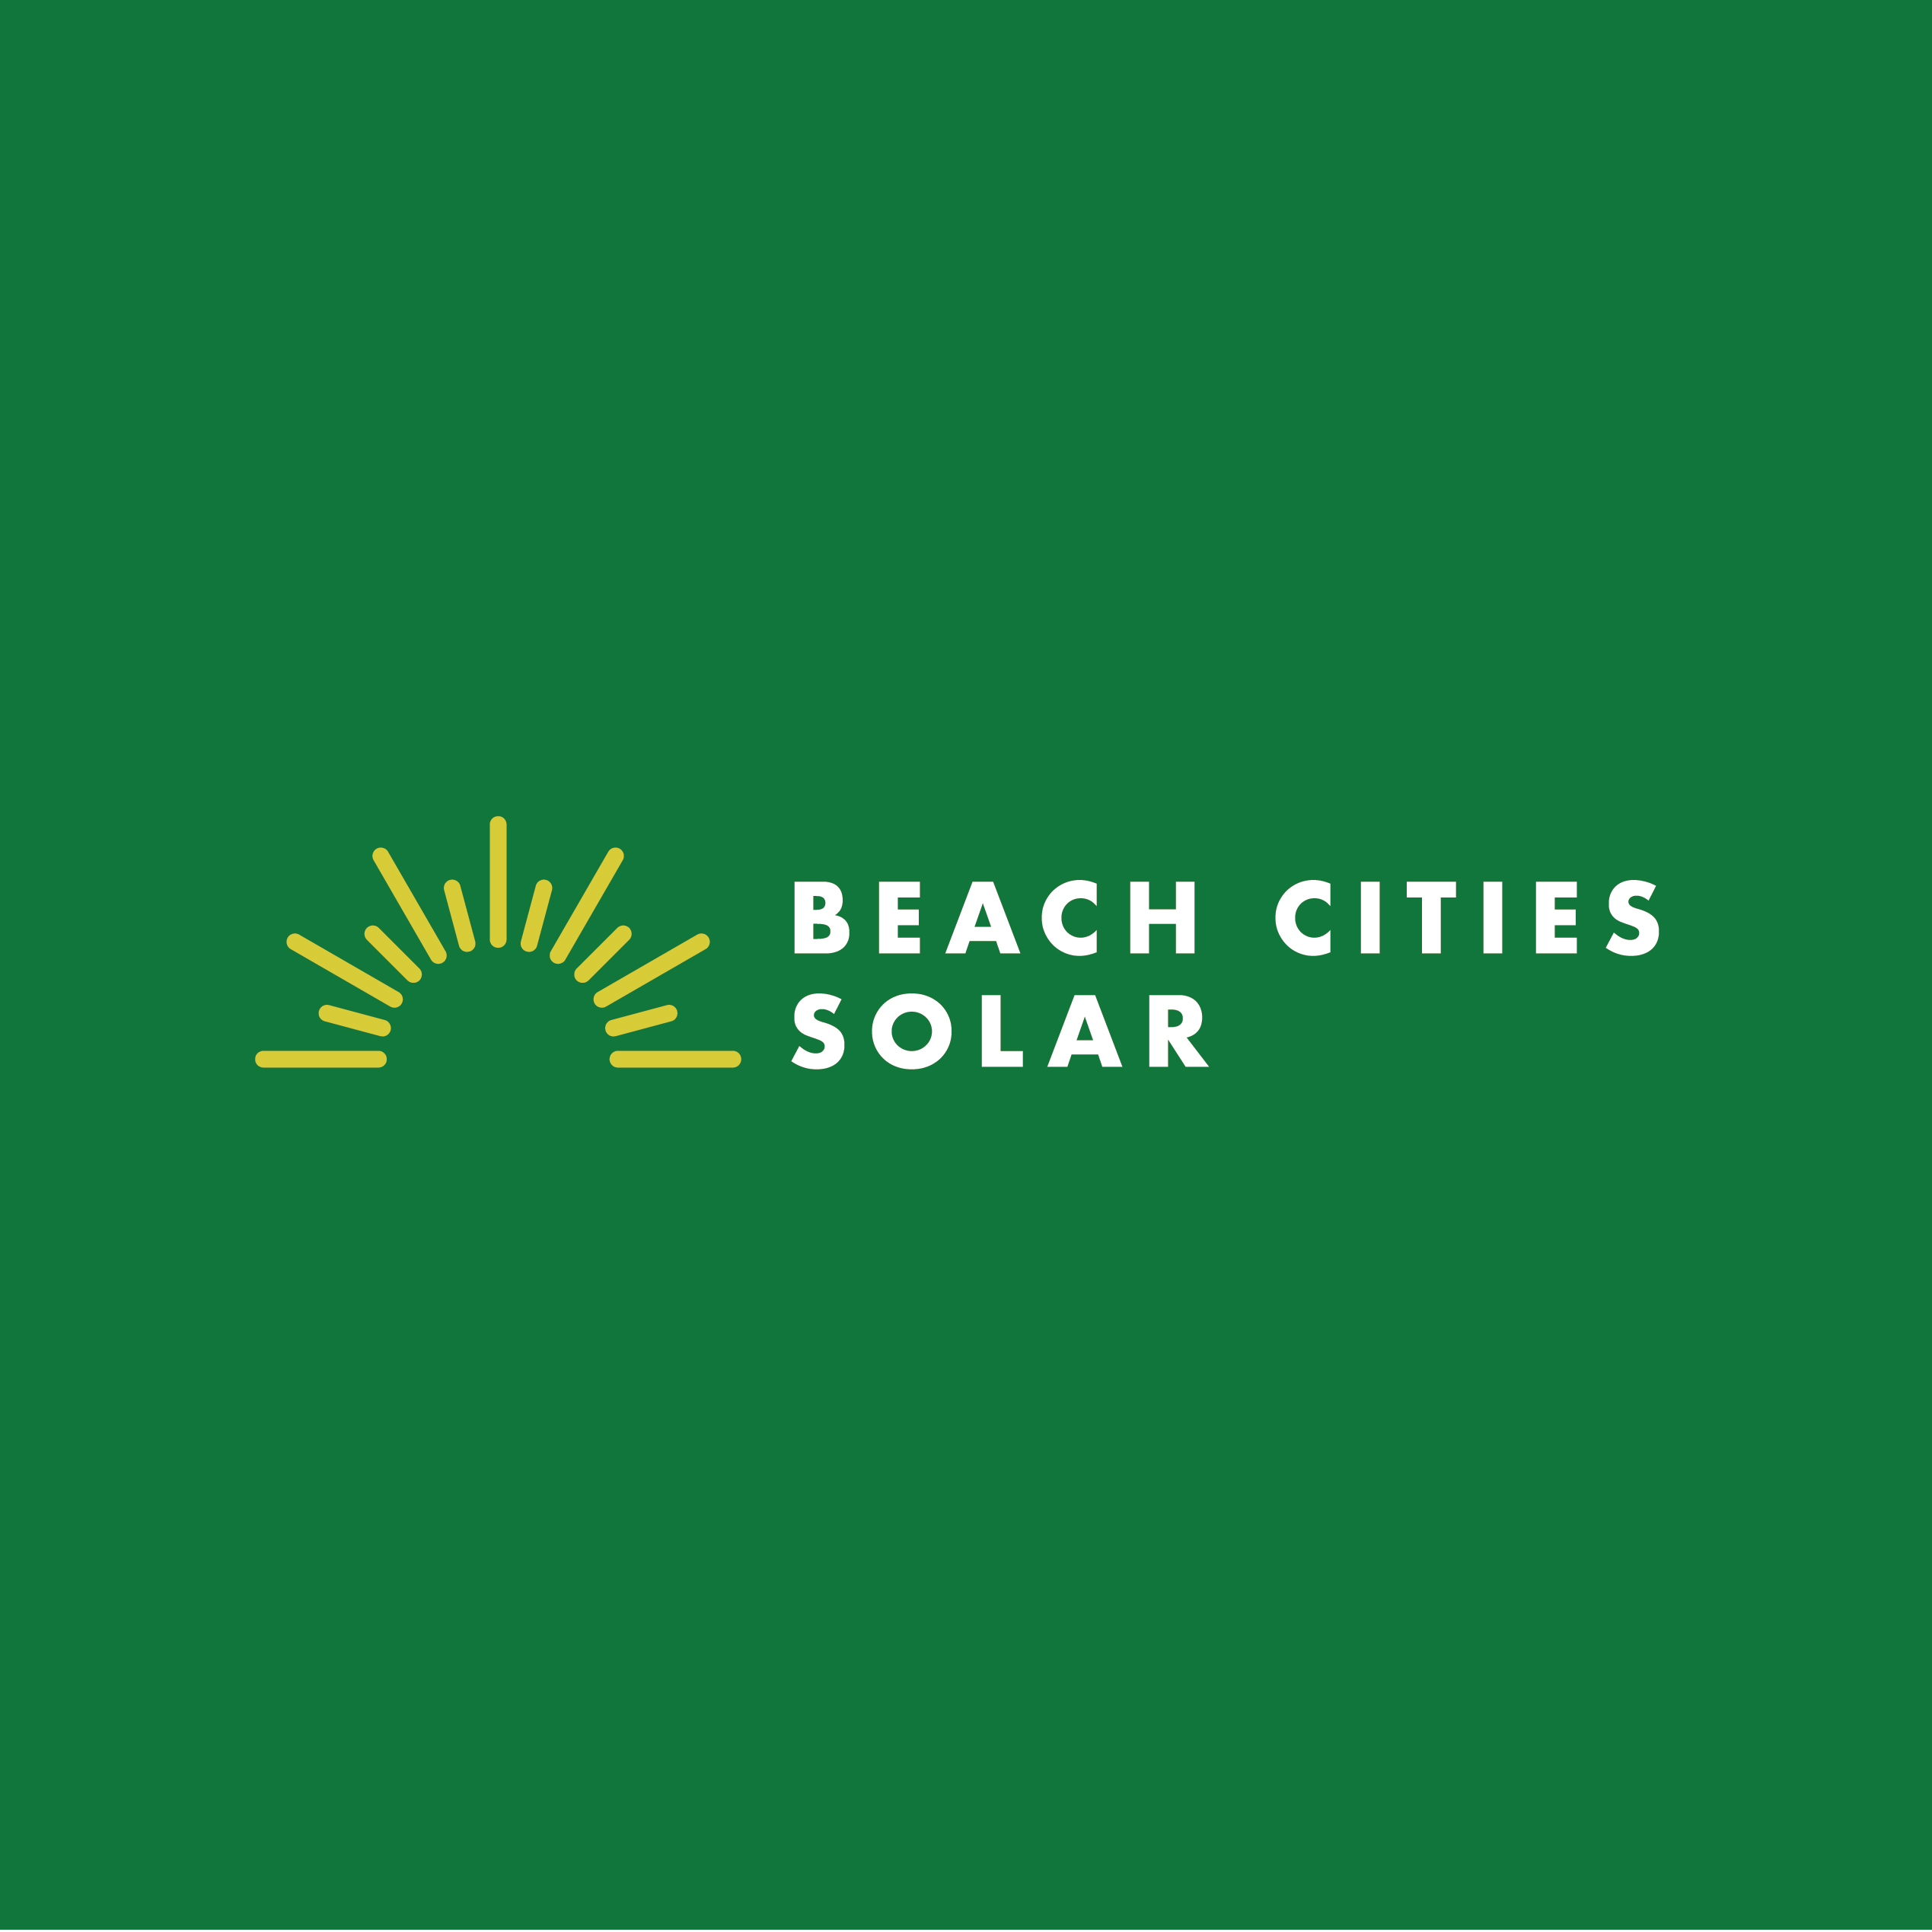 Beach_Cities_Solar_Logos_By_Stellen_Design_Profile-01